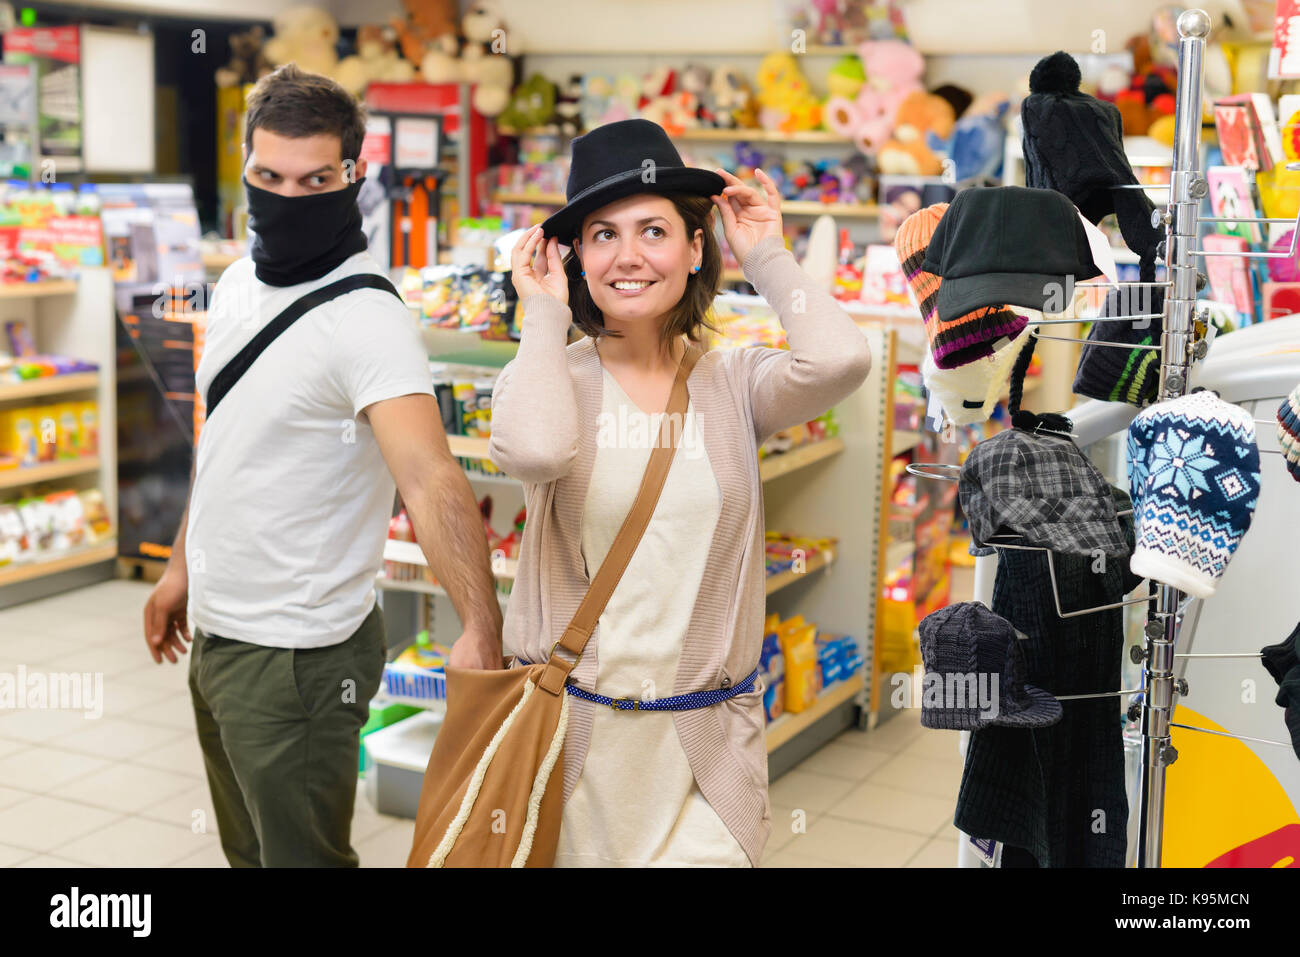 Thief stealing from handbag of a woman trying a hat  in a store - Stock Image